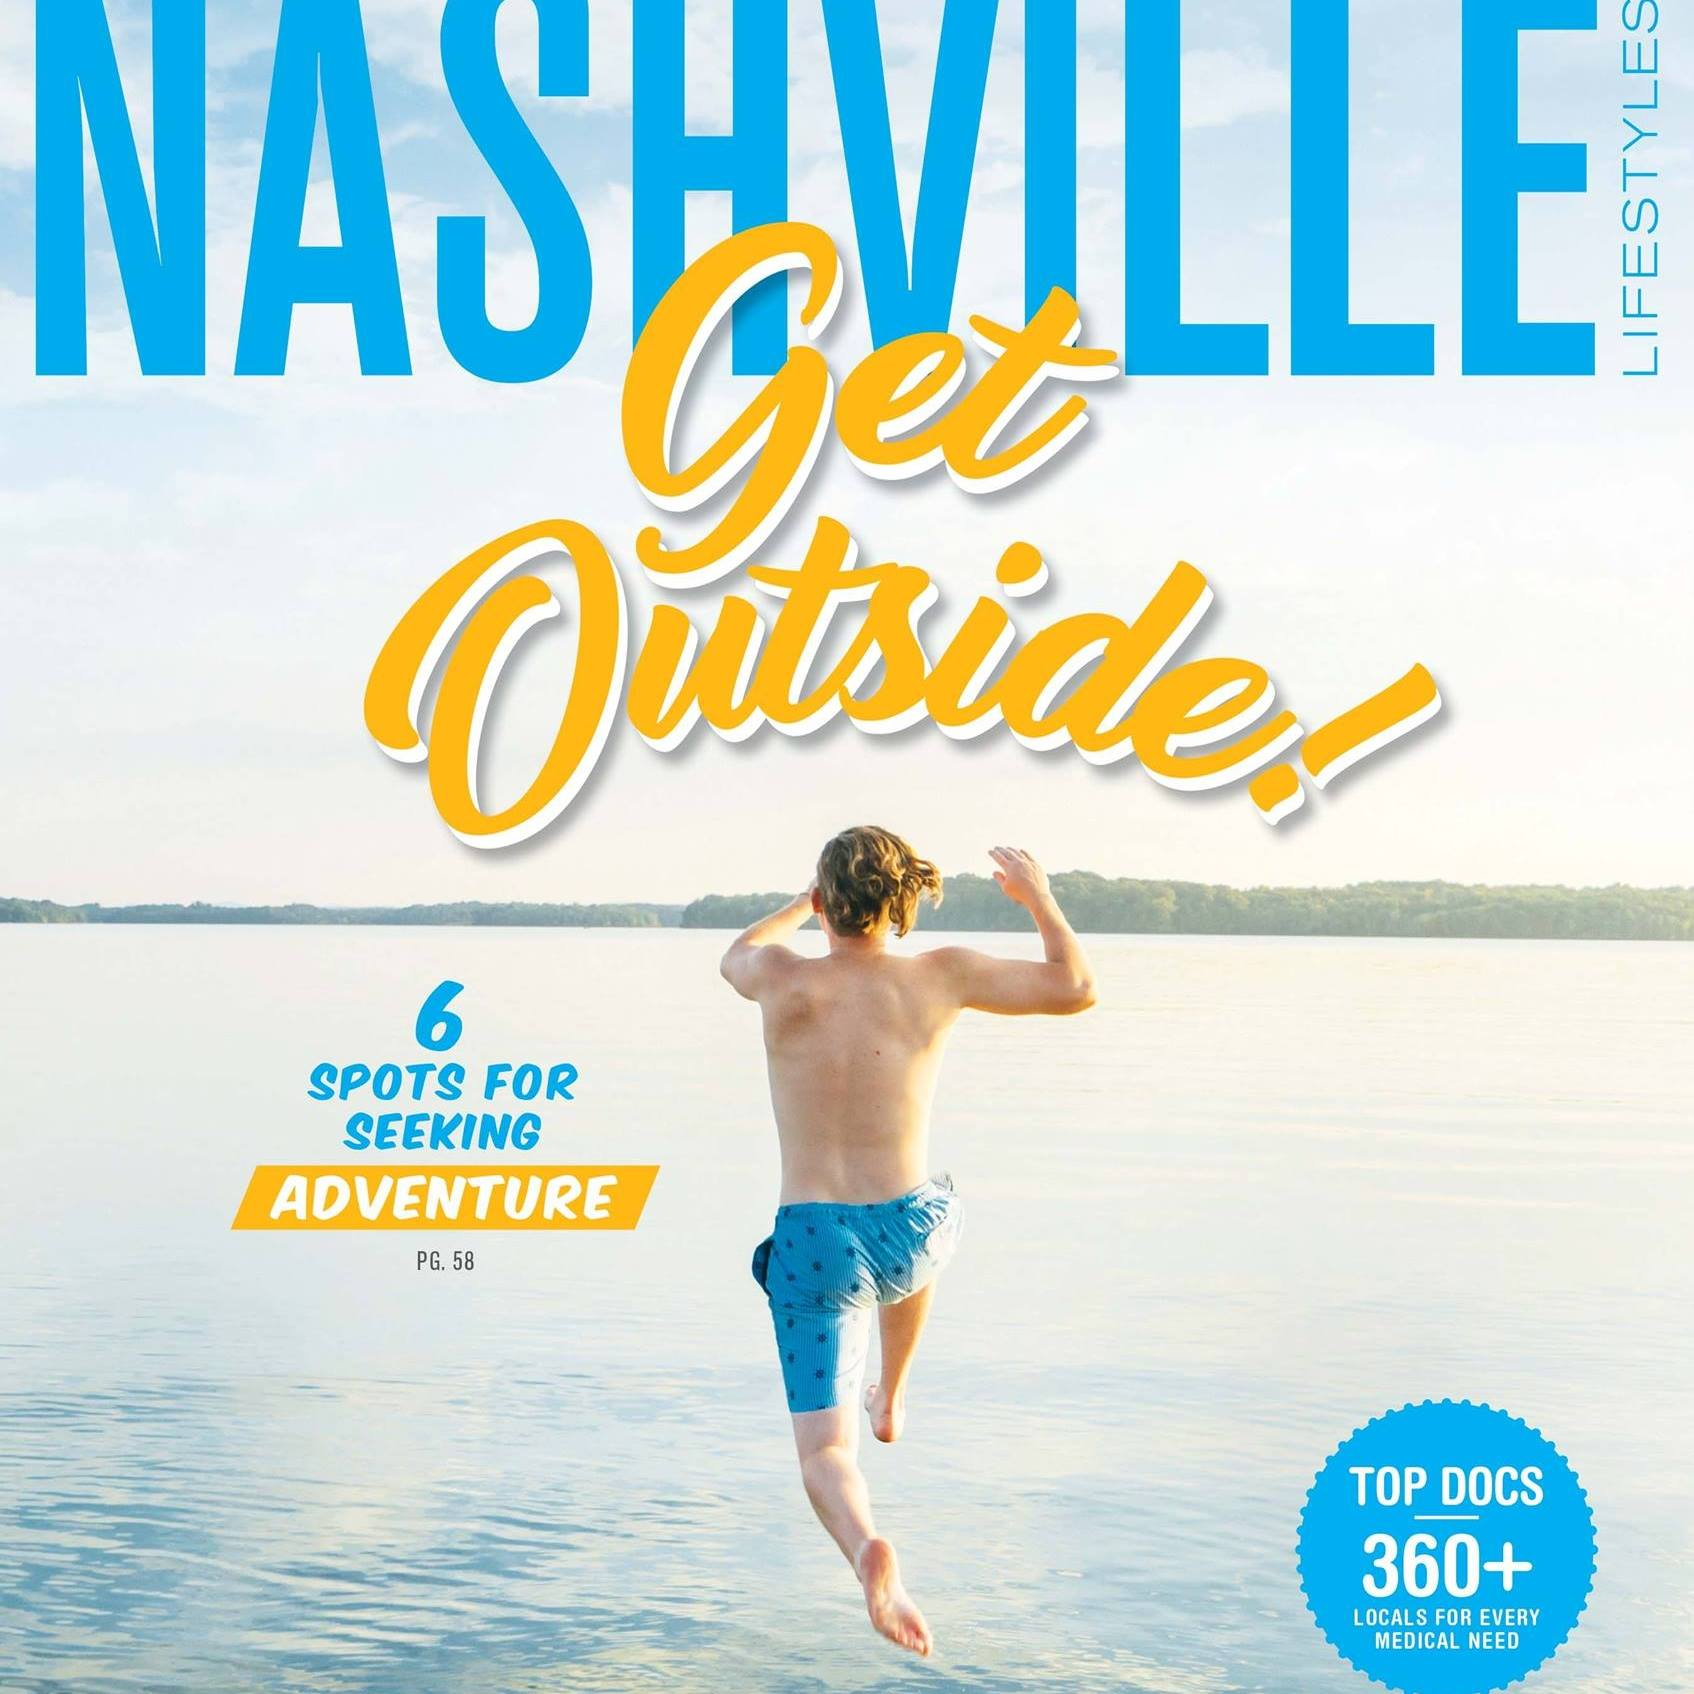 2017 Top Doctors, Nashville Lifestyles